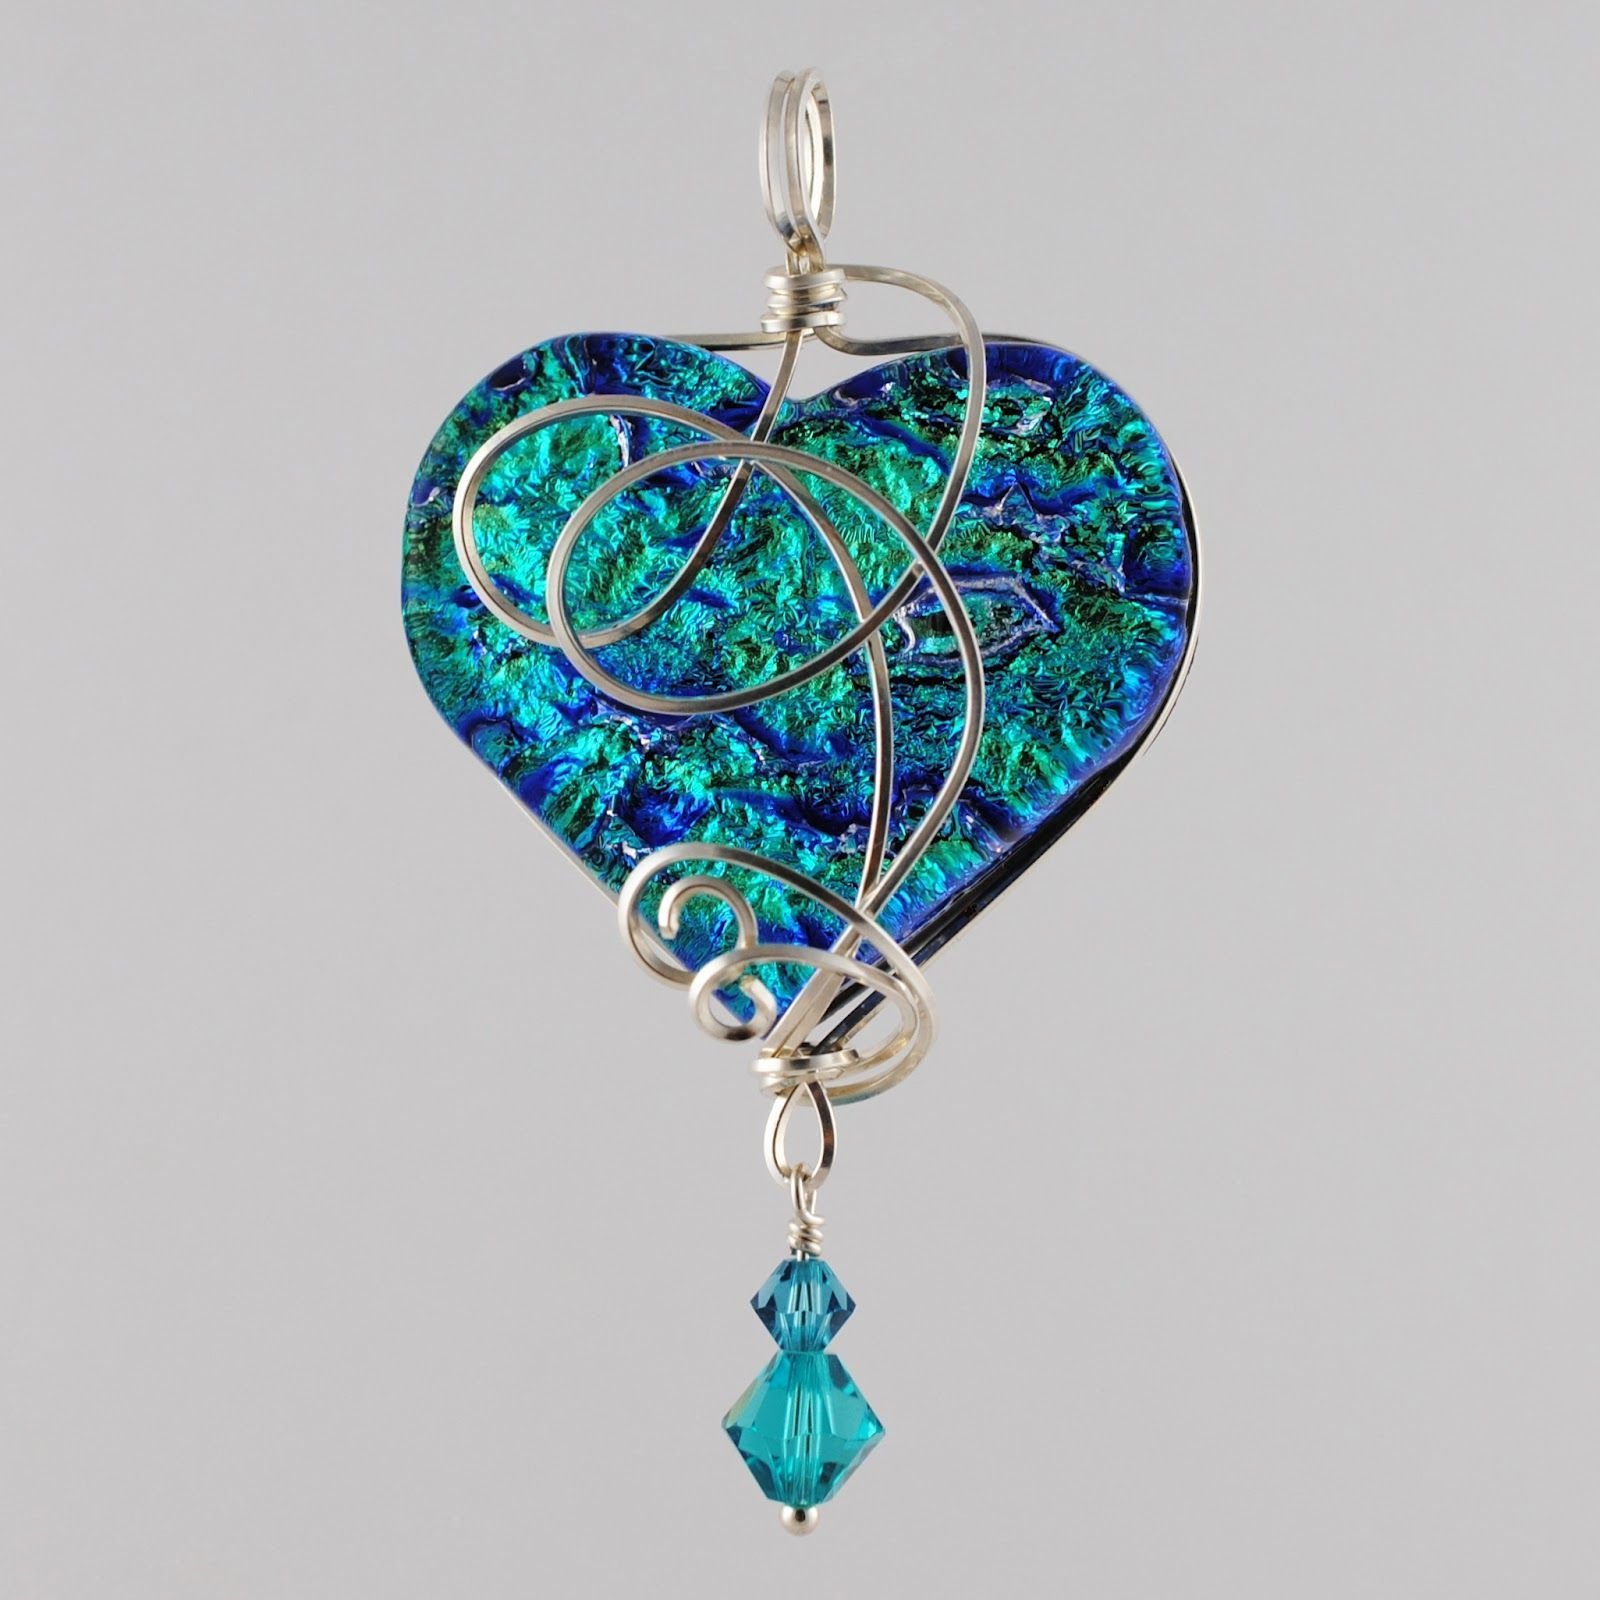 360 Fusion Glass Blog: What's New: Wire Wrapped Fused Glass Marquis Pendants -  360 Fusion Glass Blog: What's New: Wire Wrapped Fused Glass Marquis Pendants  - #blog #diyjewelryinspiration #fused #fusion #glass #marquis #pendants #Whats #wire #Wirewrappedpendant #wrapped